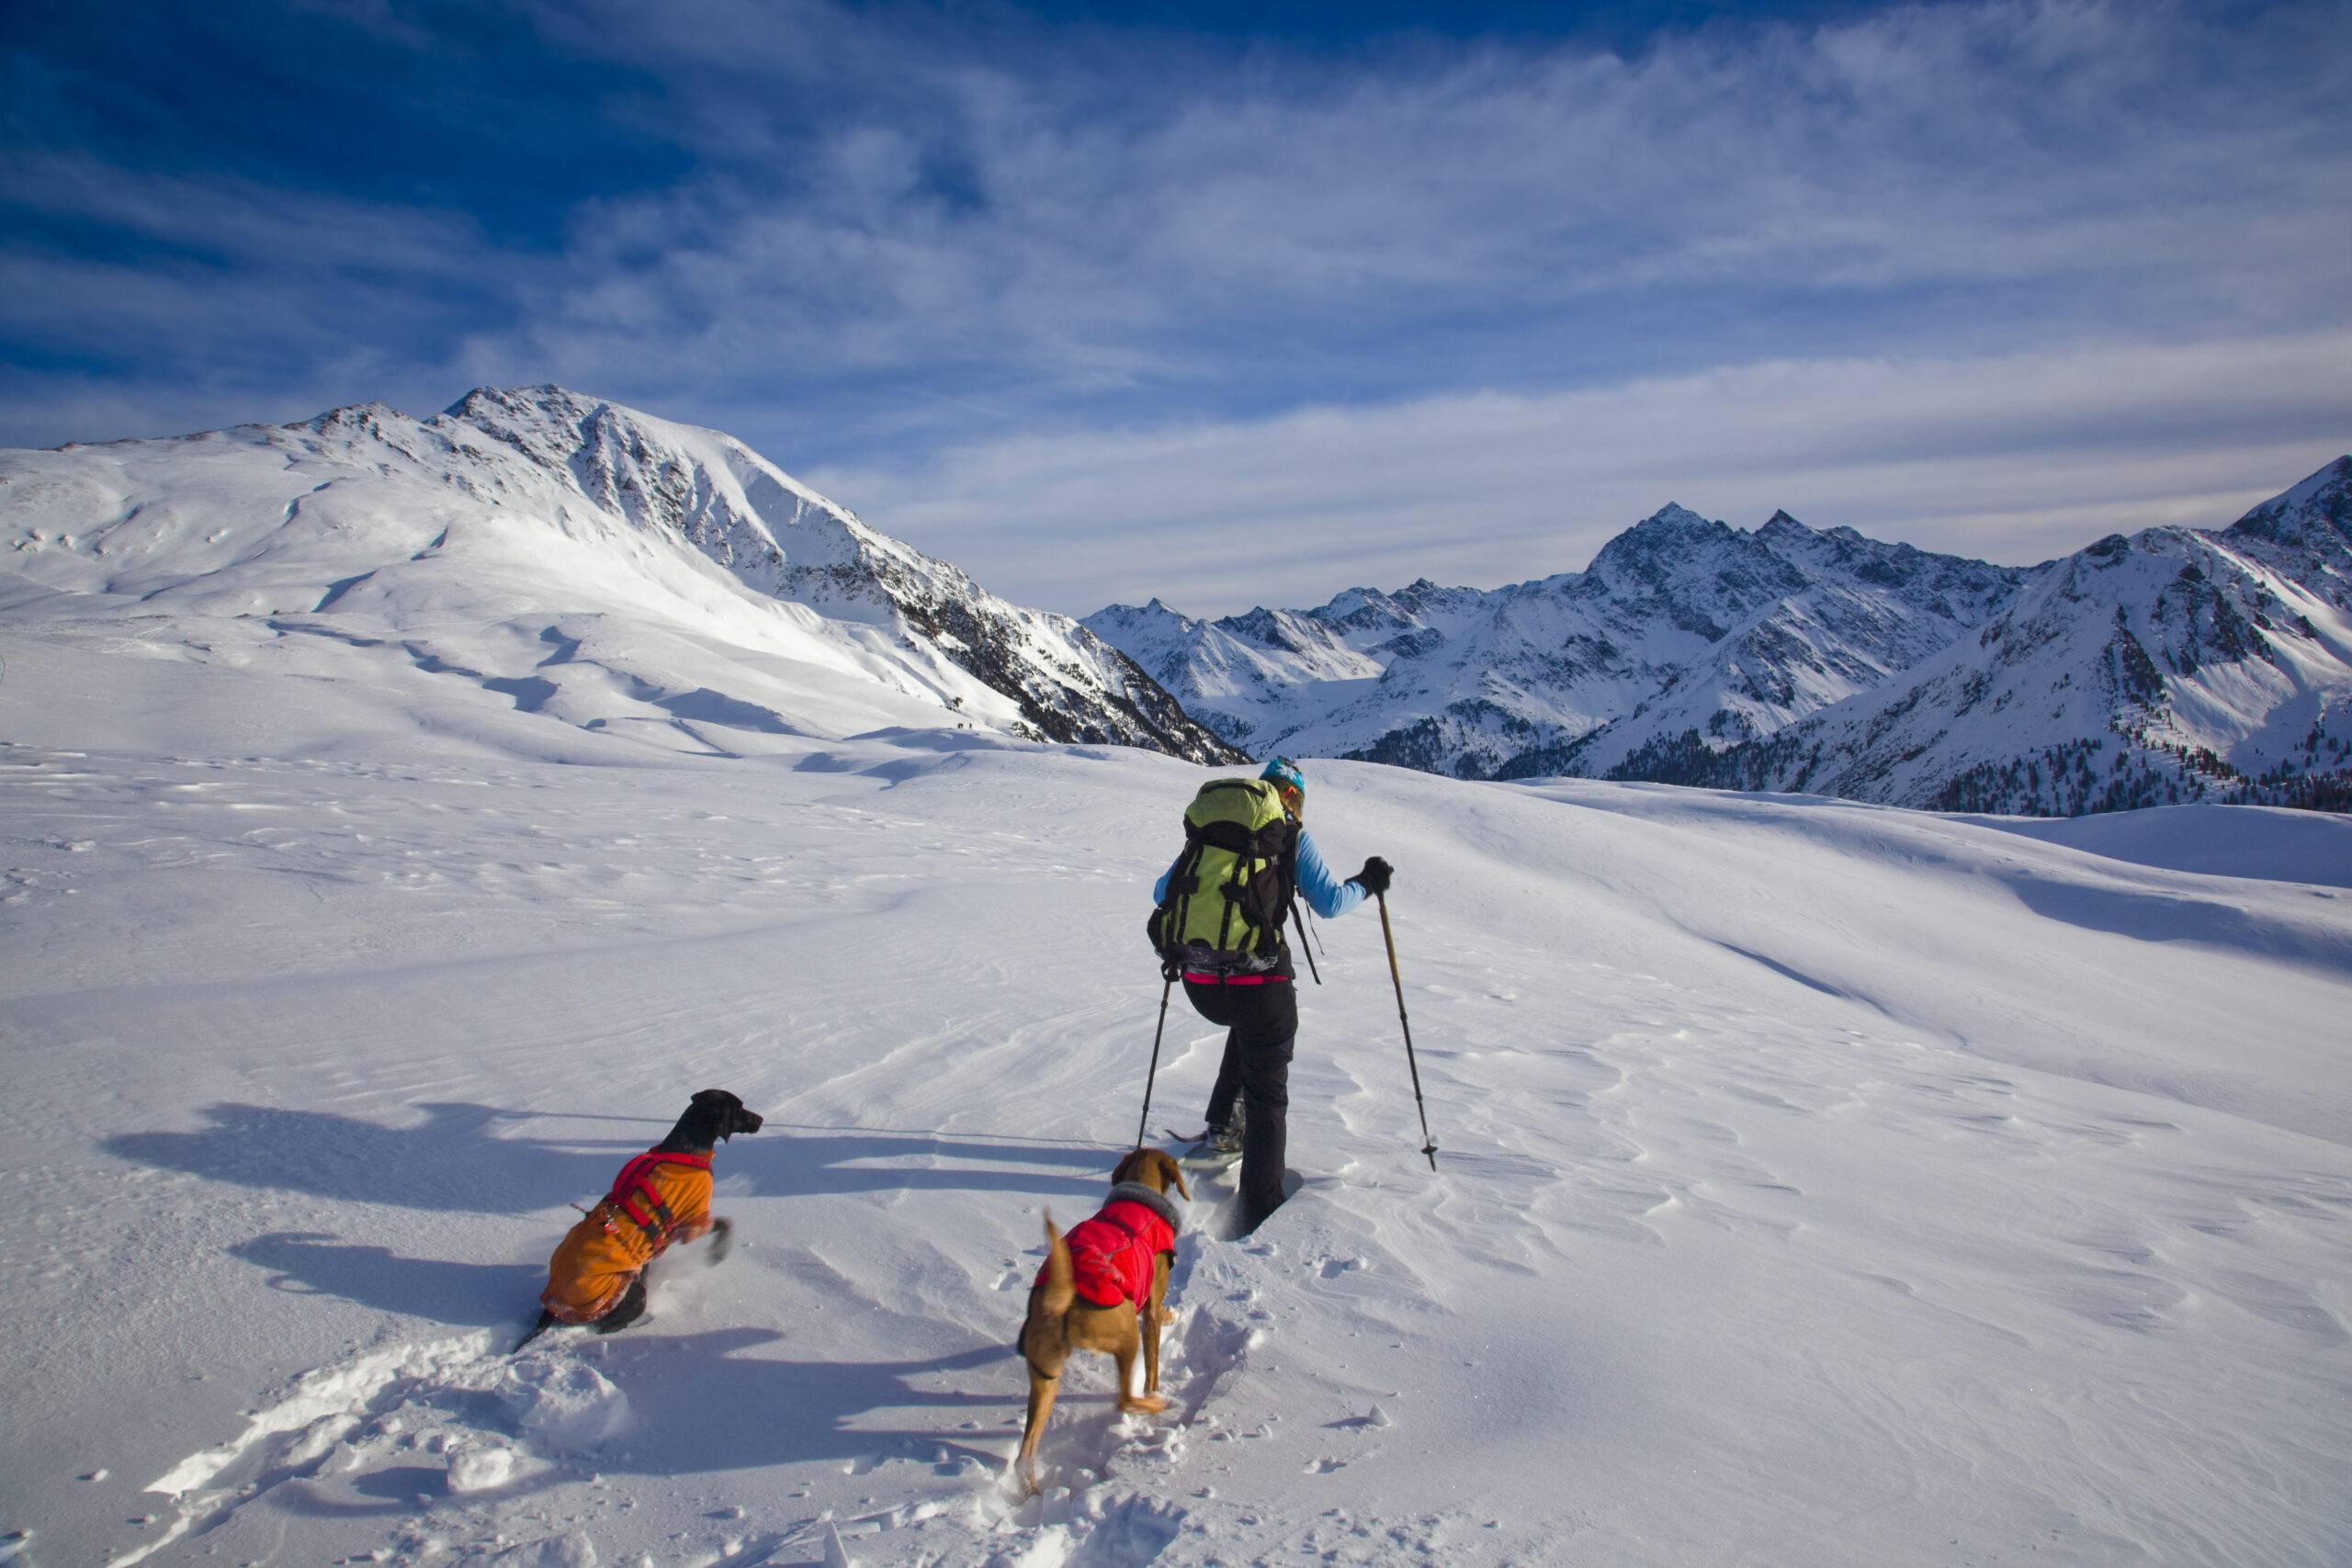 A man and his dogs snowshoeing on a mountain